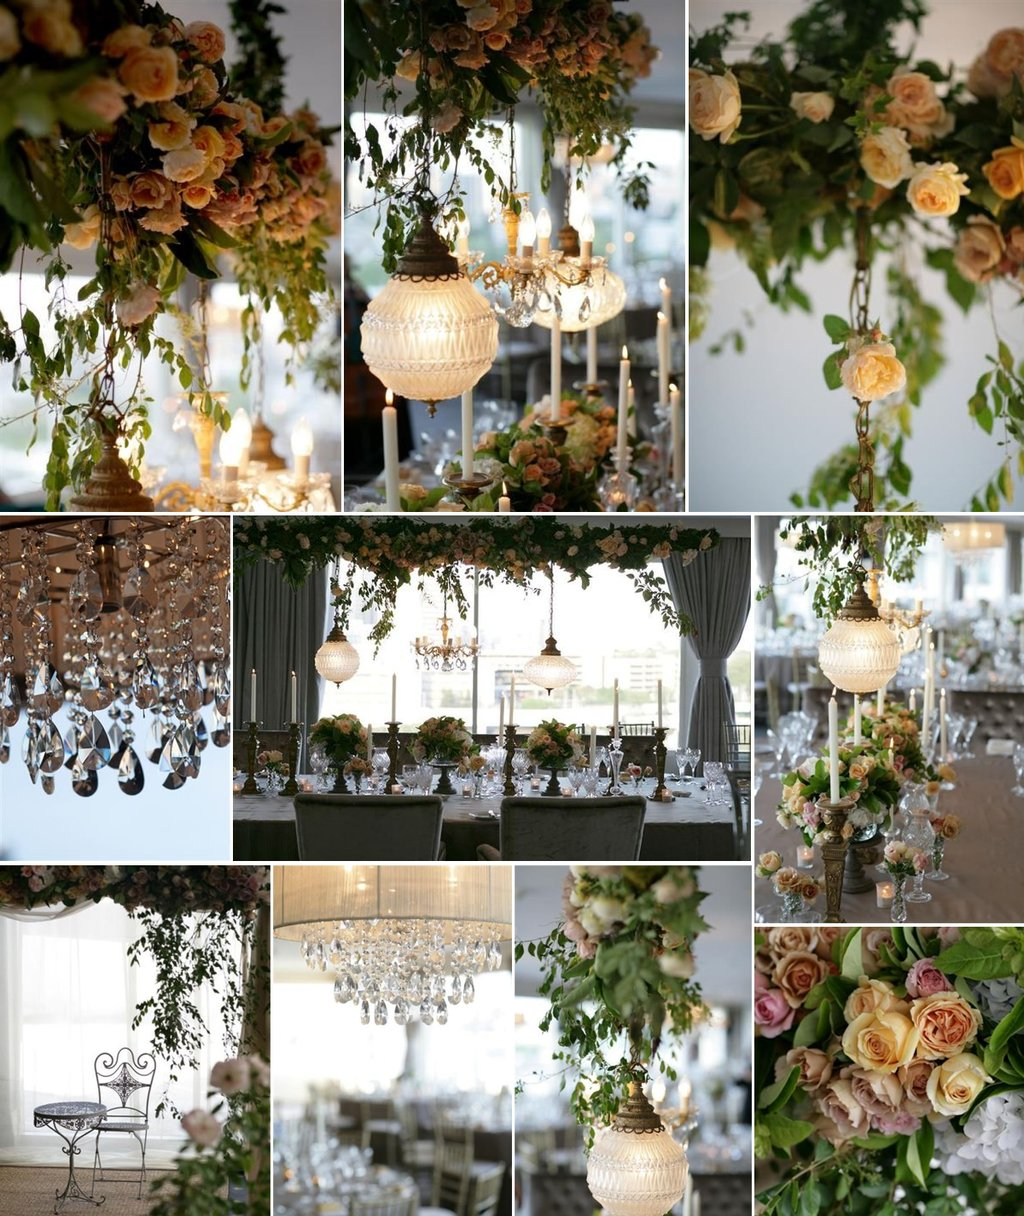 Elegant Wedding Reception Decoration: Elegant Hanging Wedding Reception Decor Flowers